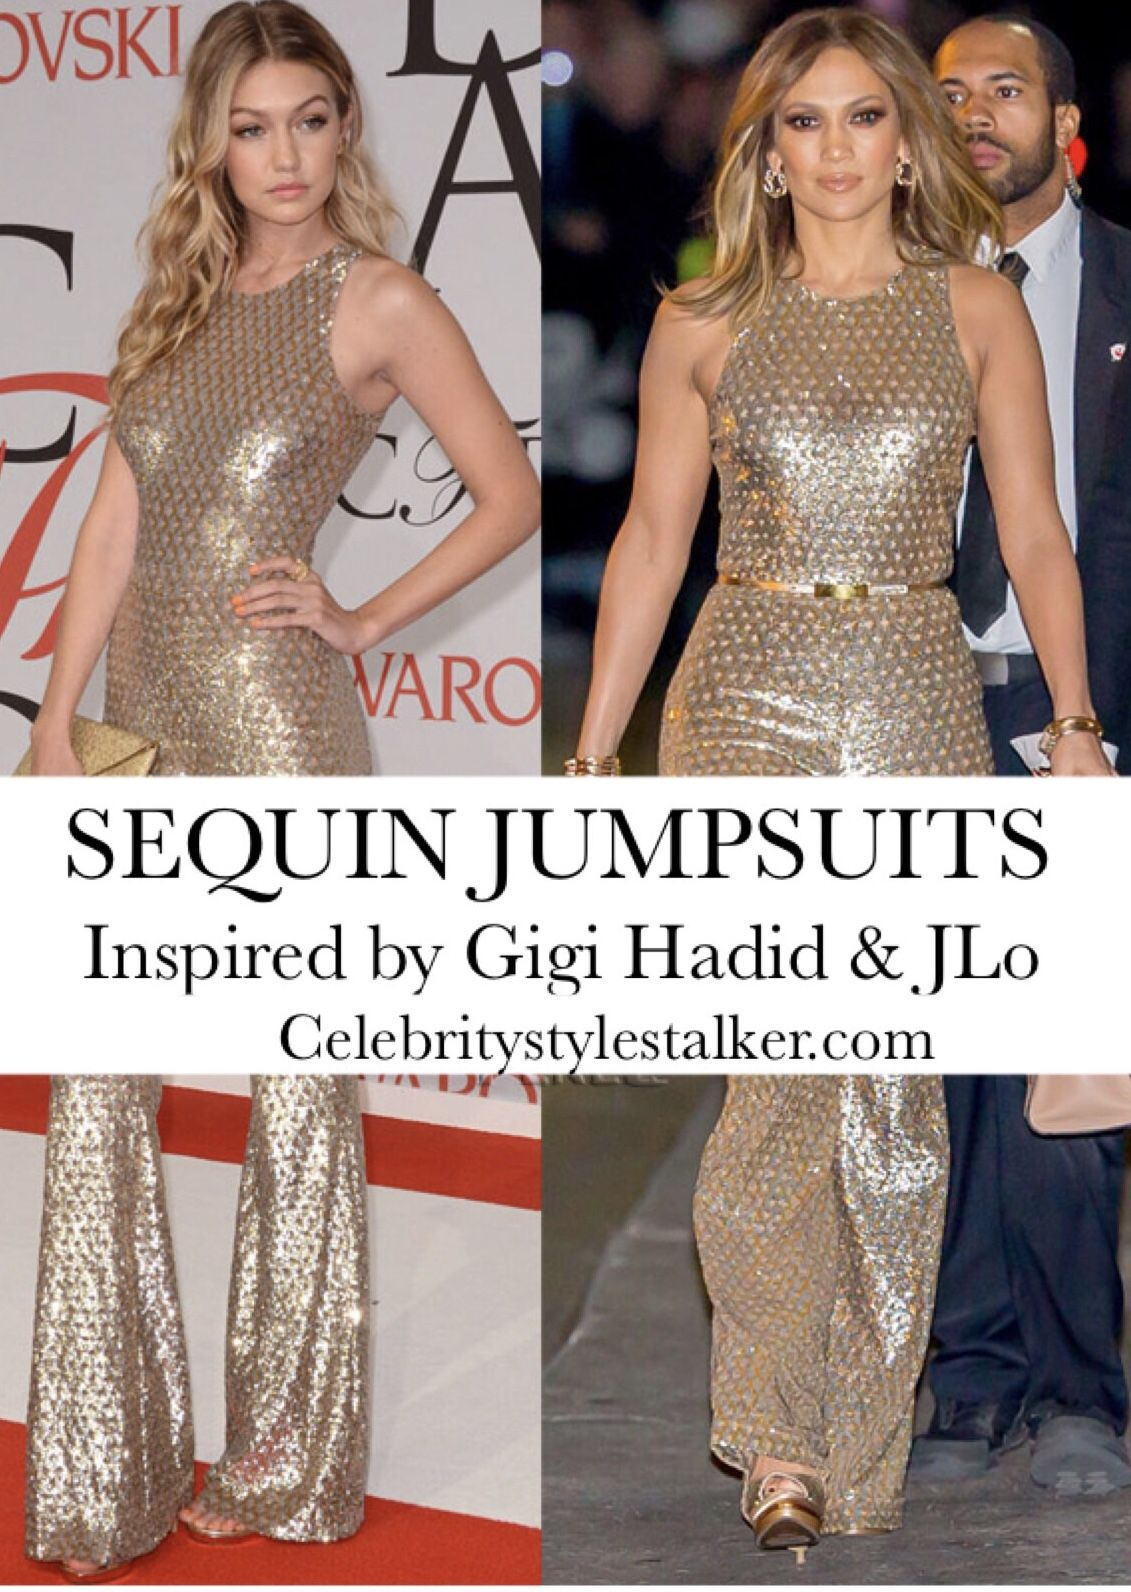 078a92b33b90 What to Wear NYE 2018  Sequin Jumpsuits Inspired by Gigi Hadid   Jennifer  Lopez – Celebrity Style Stalker  jlo  celebritystyle  celebrityfashion ...